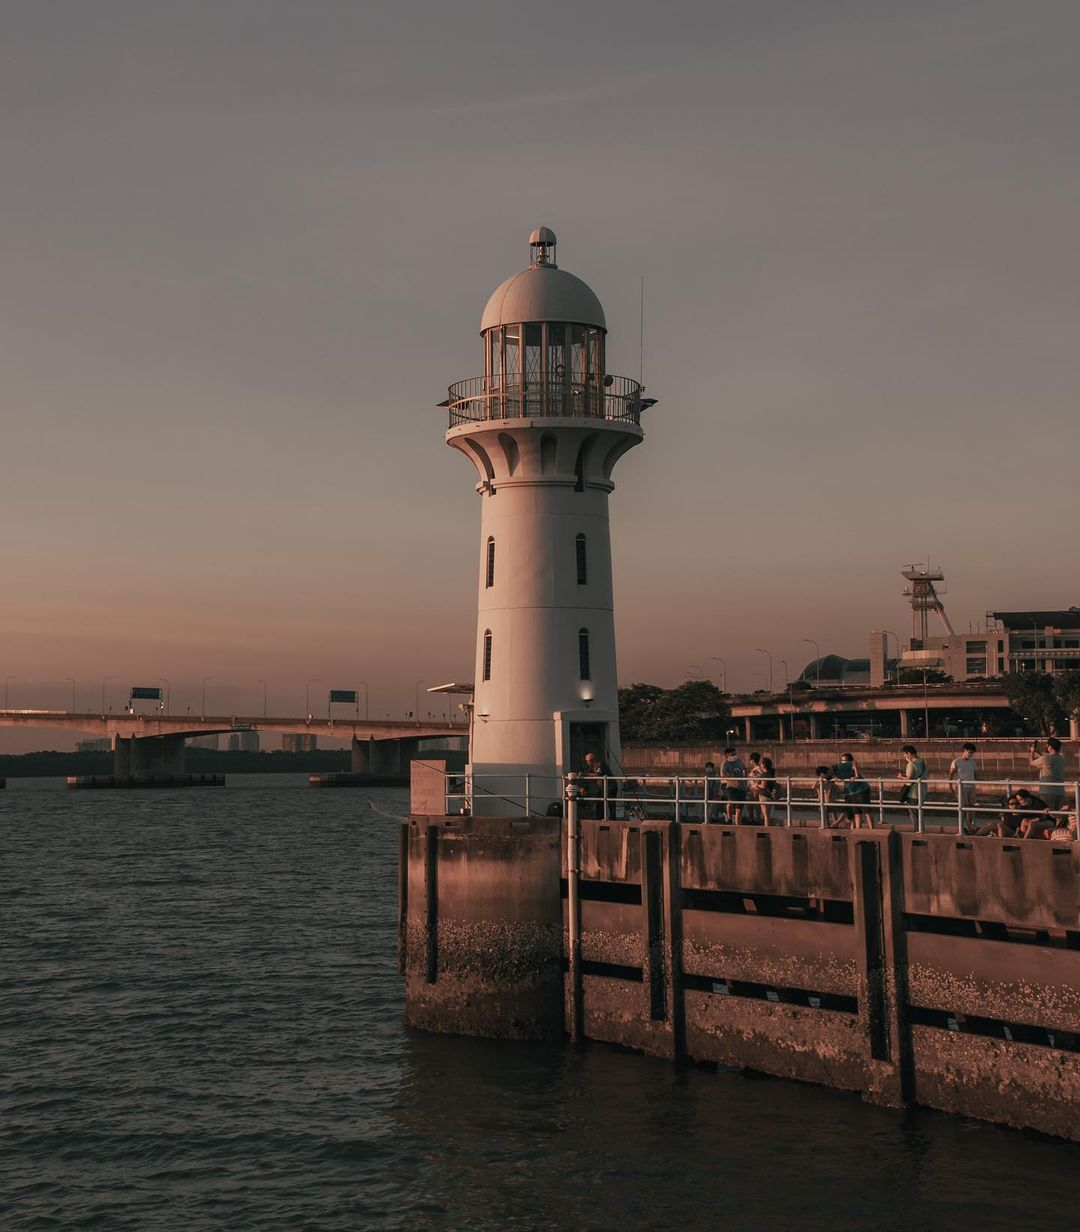 Raffles Marina's Lighthouse - Things to do in January 2021